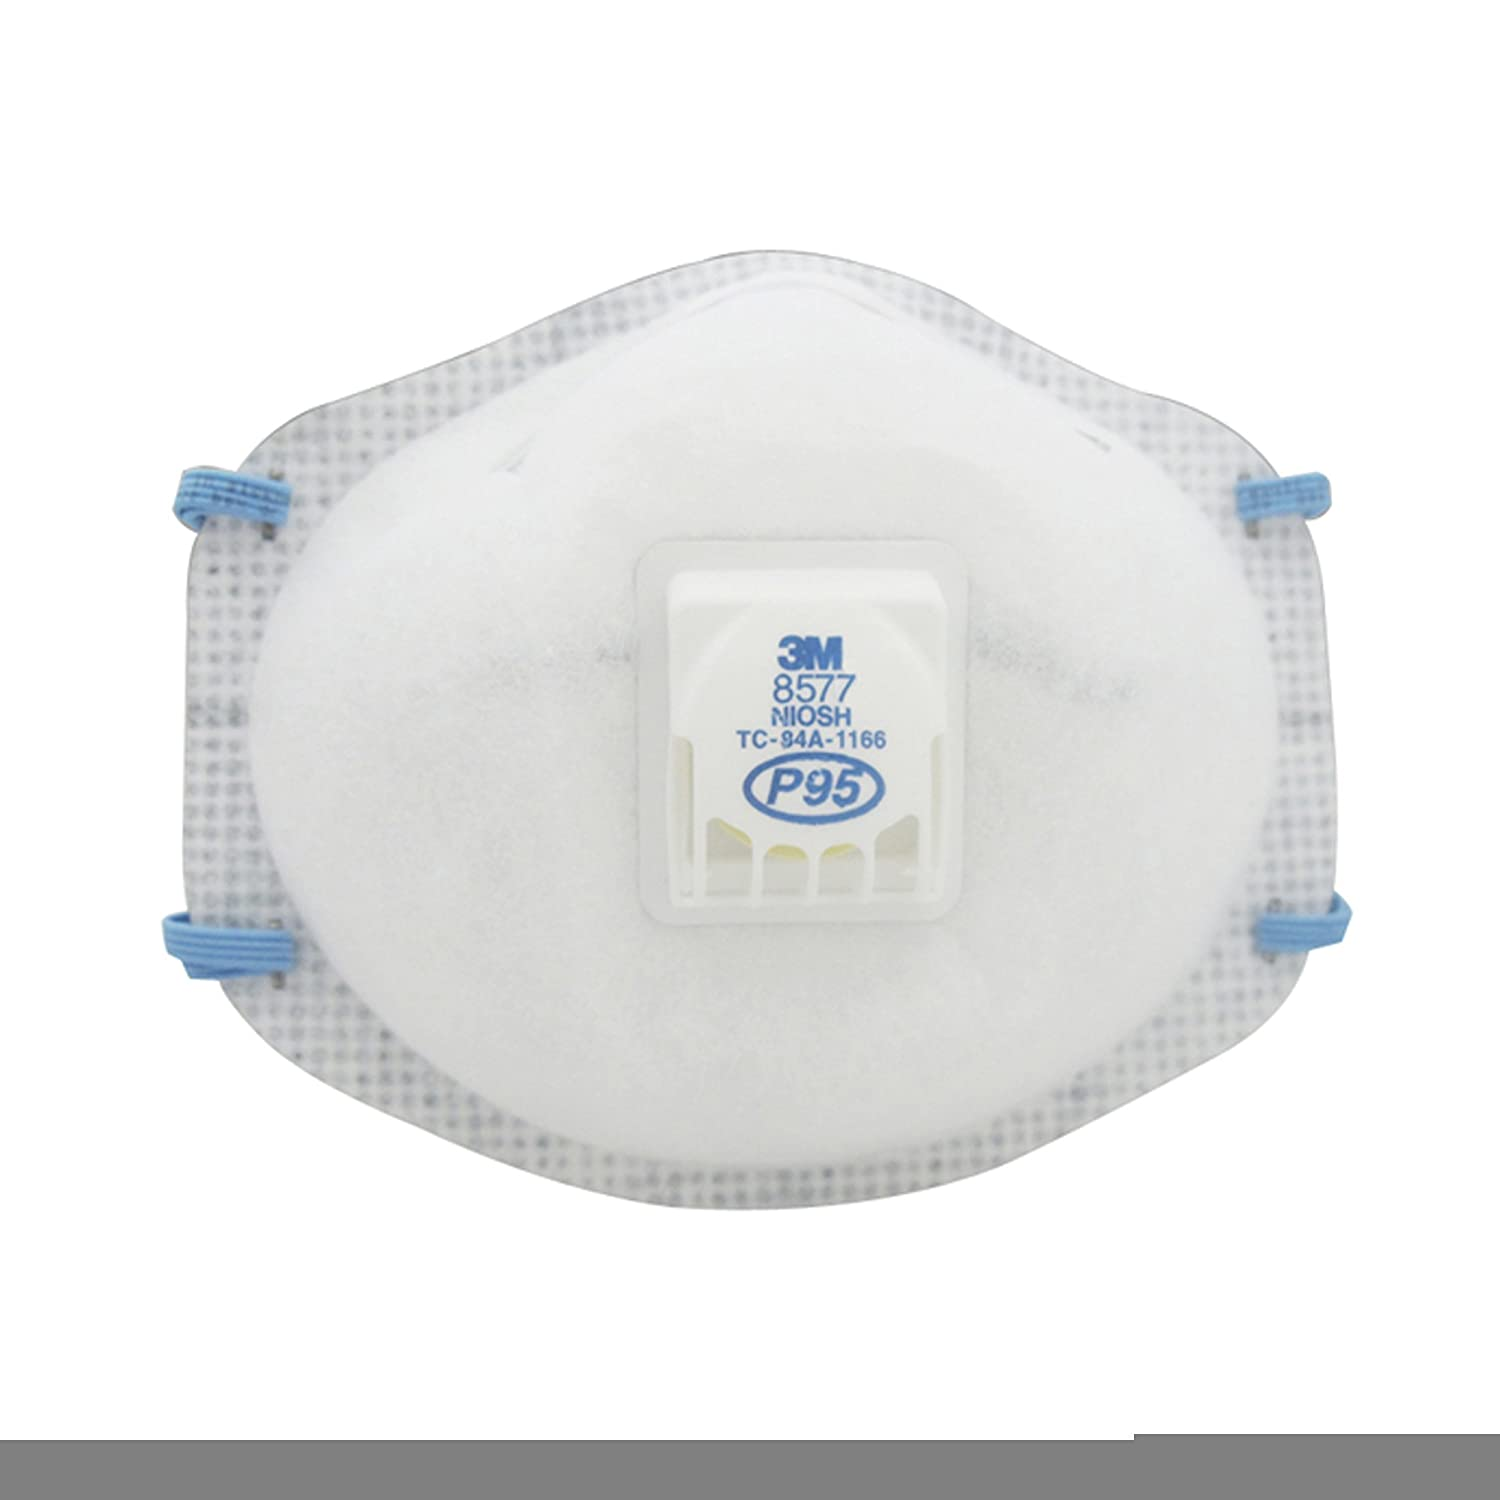 8577 P95 Mco54371 - Particulate Amazon Respirator 3m in